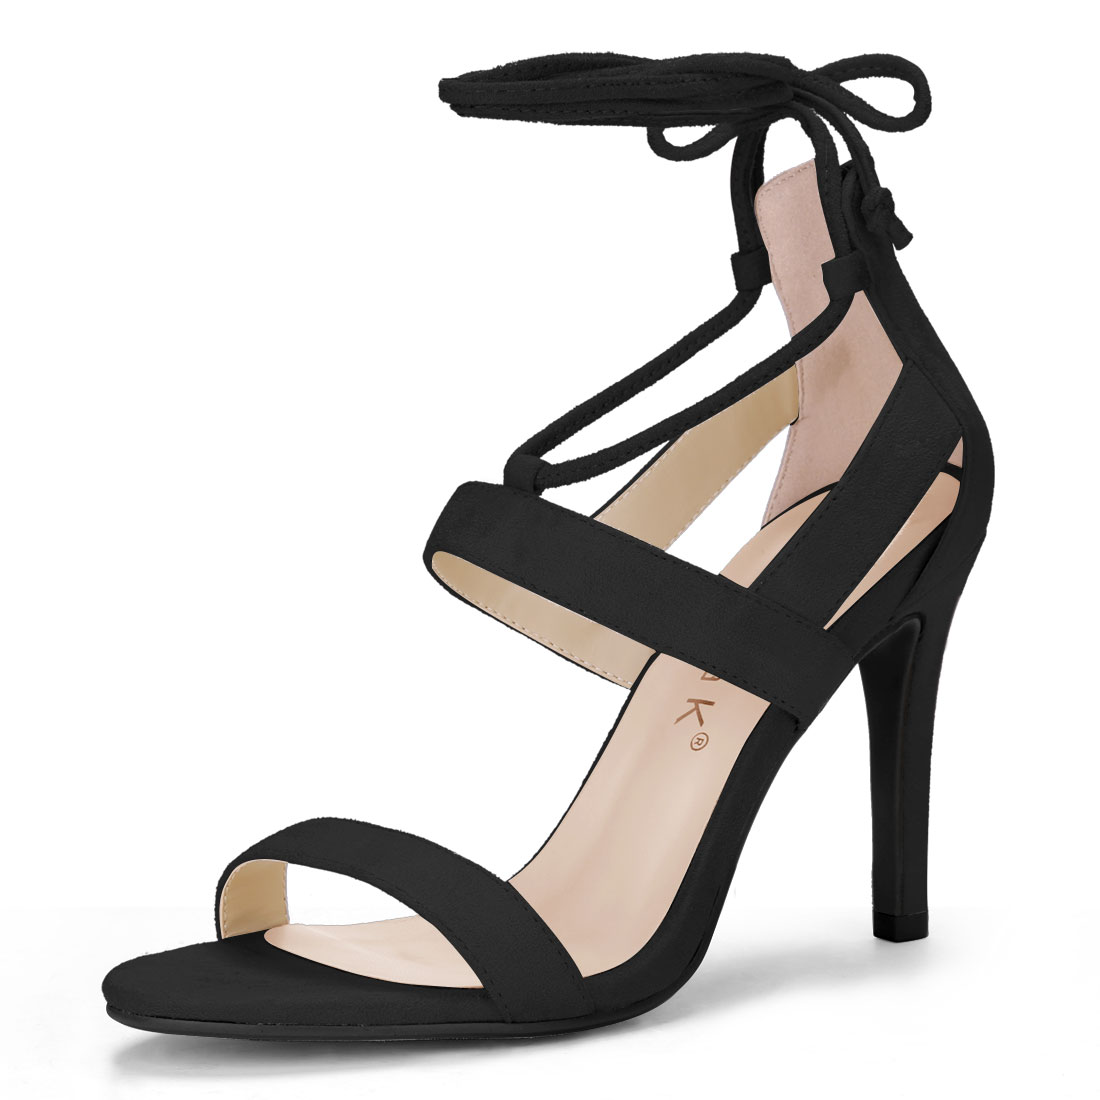 Women Open Toe Cutout Stiletto Heel Lace Up Sandals Black US 9